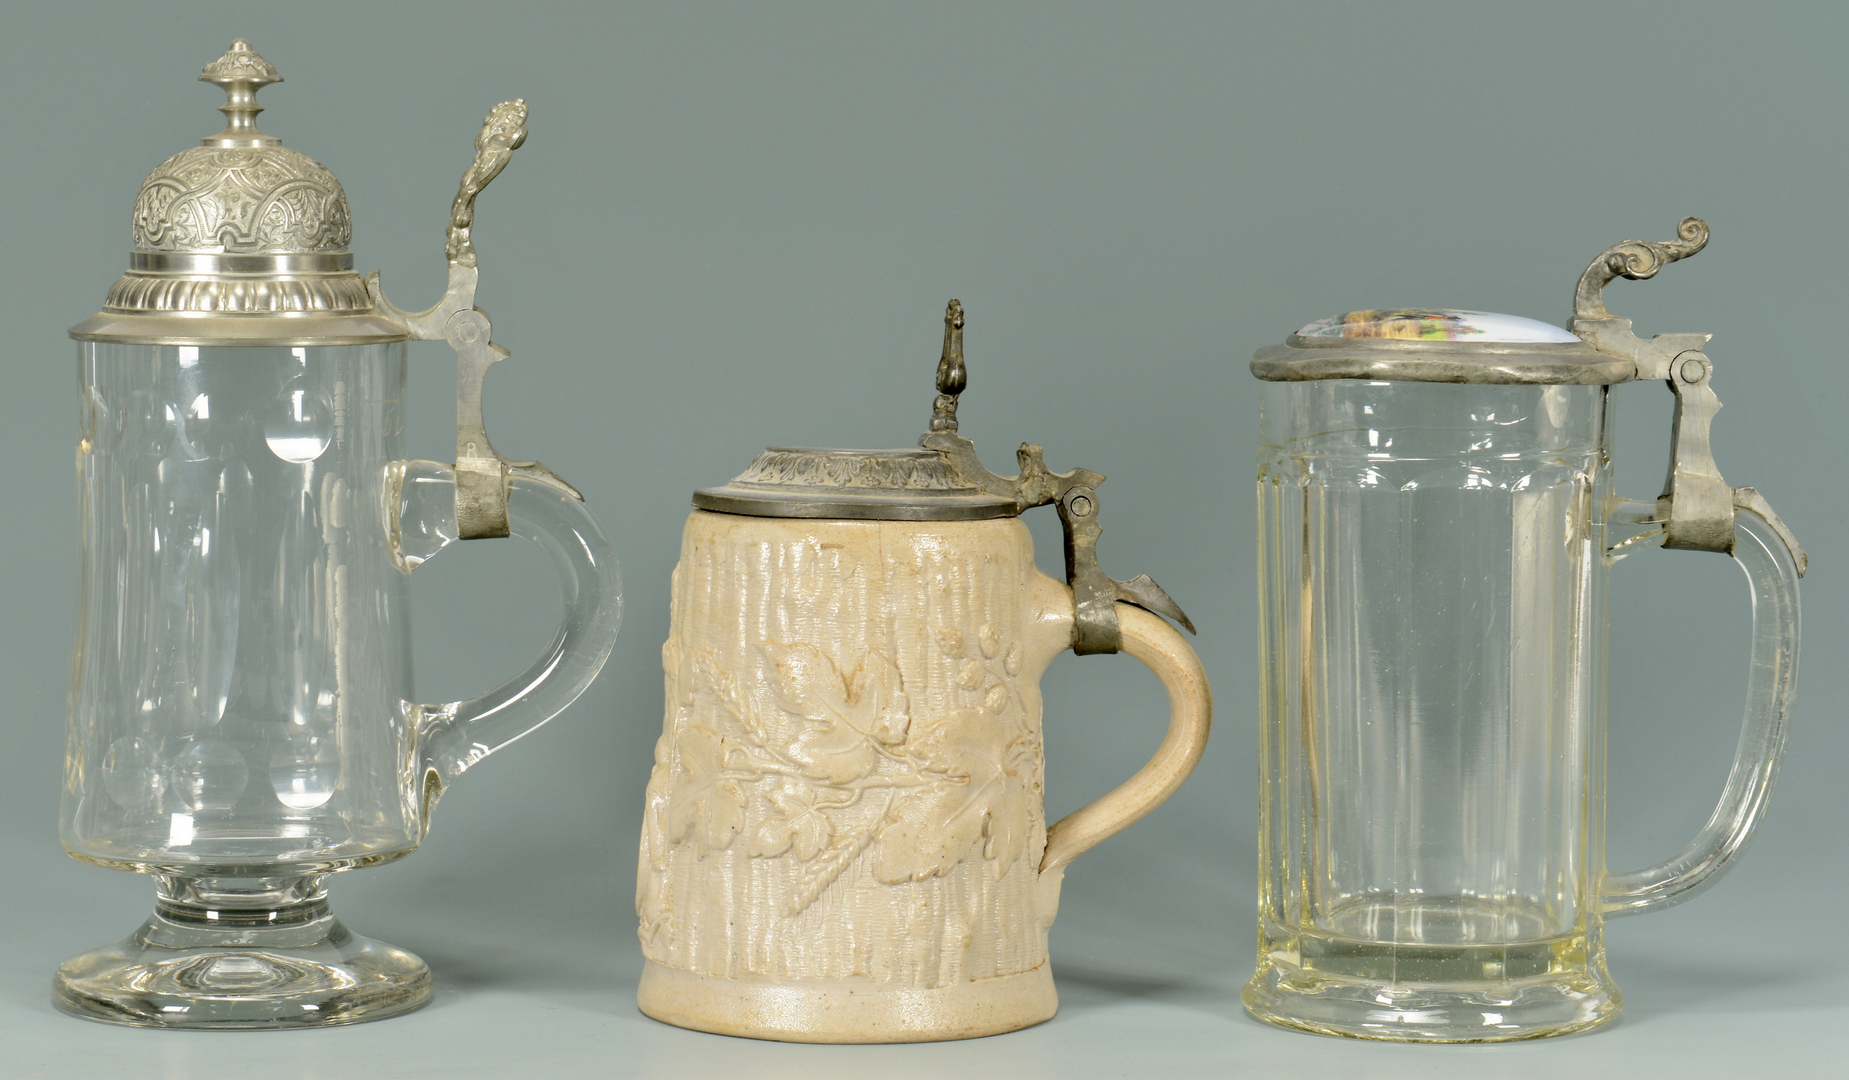 Lot 3088352: 7 German Steins – 4 Glass & 3 Earthenware